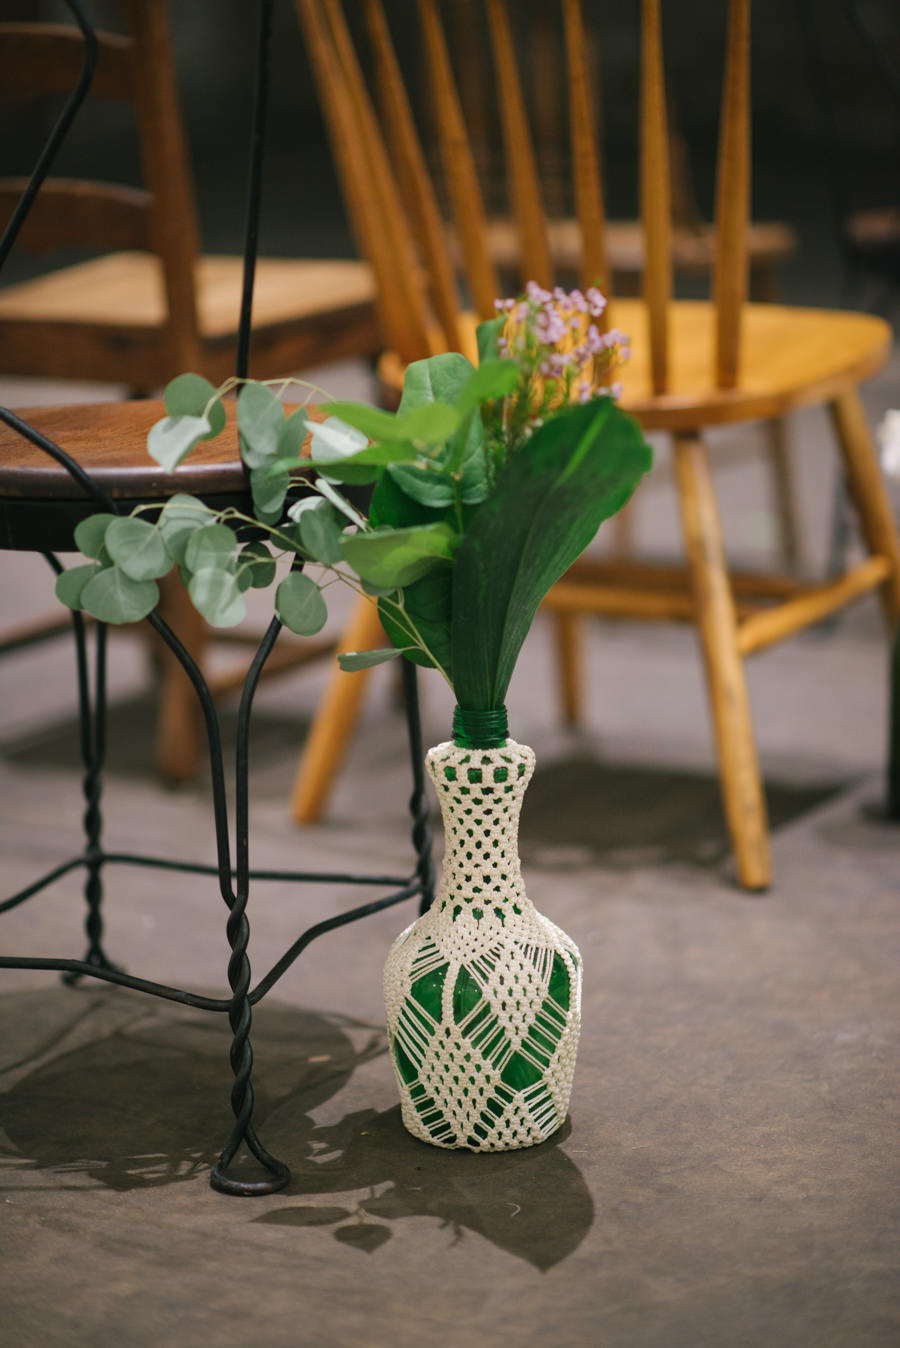 Wedding Ceremony Vintage Vase with Crochet Cover and Greenery with Mis-Matched Wooden Chairs